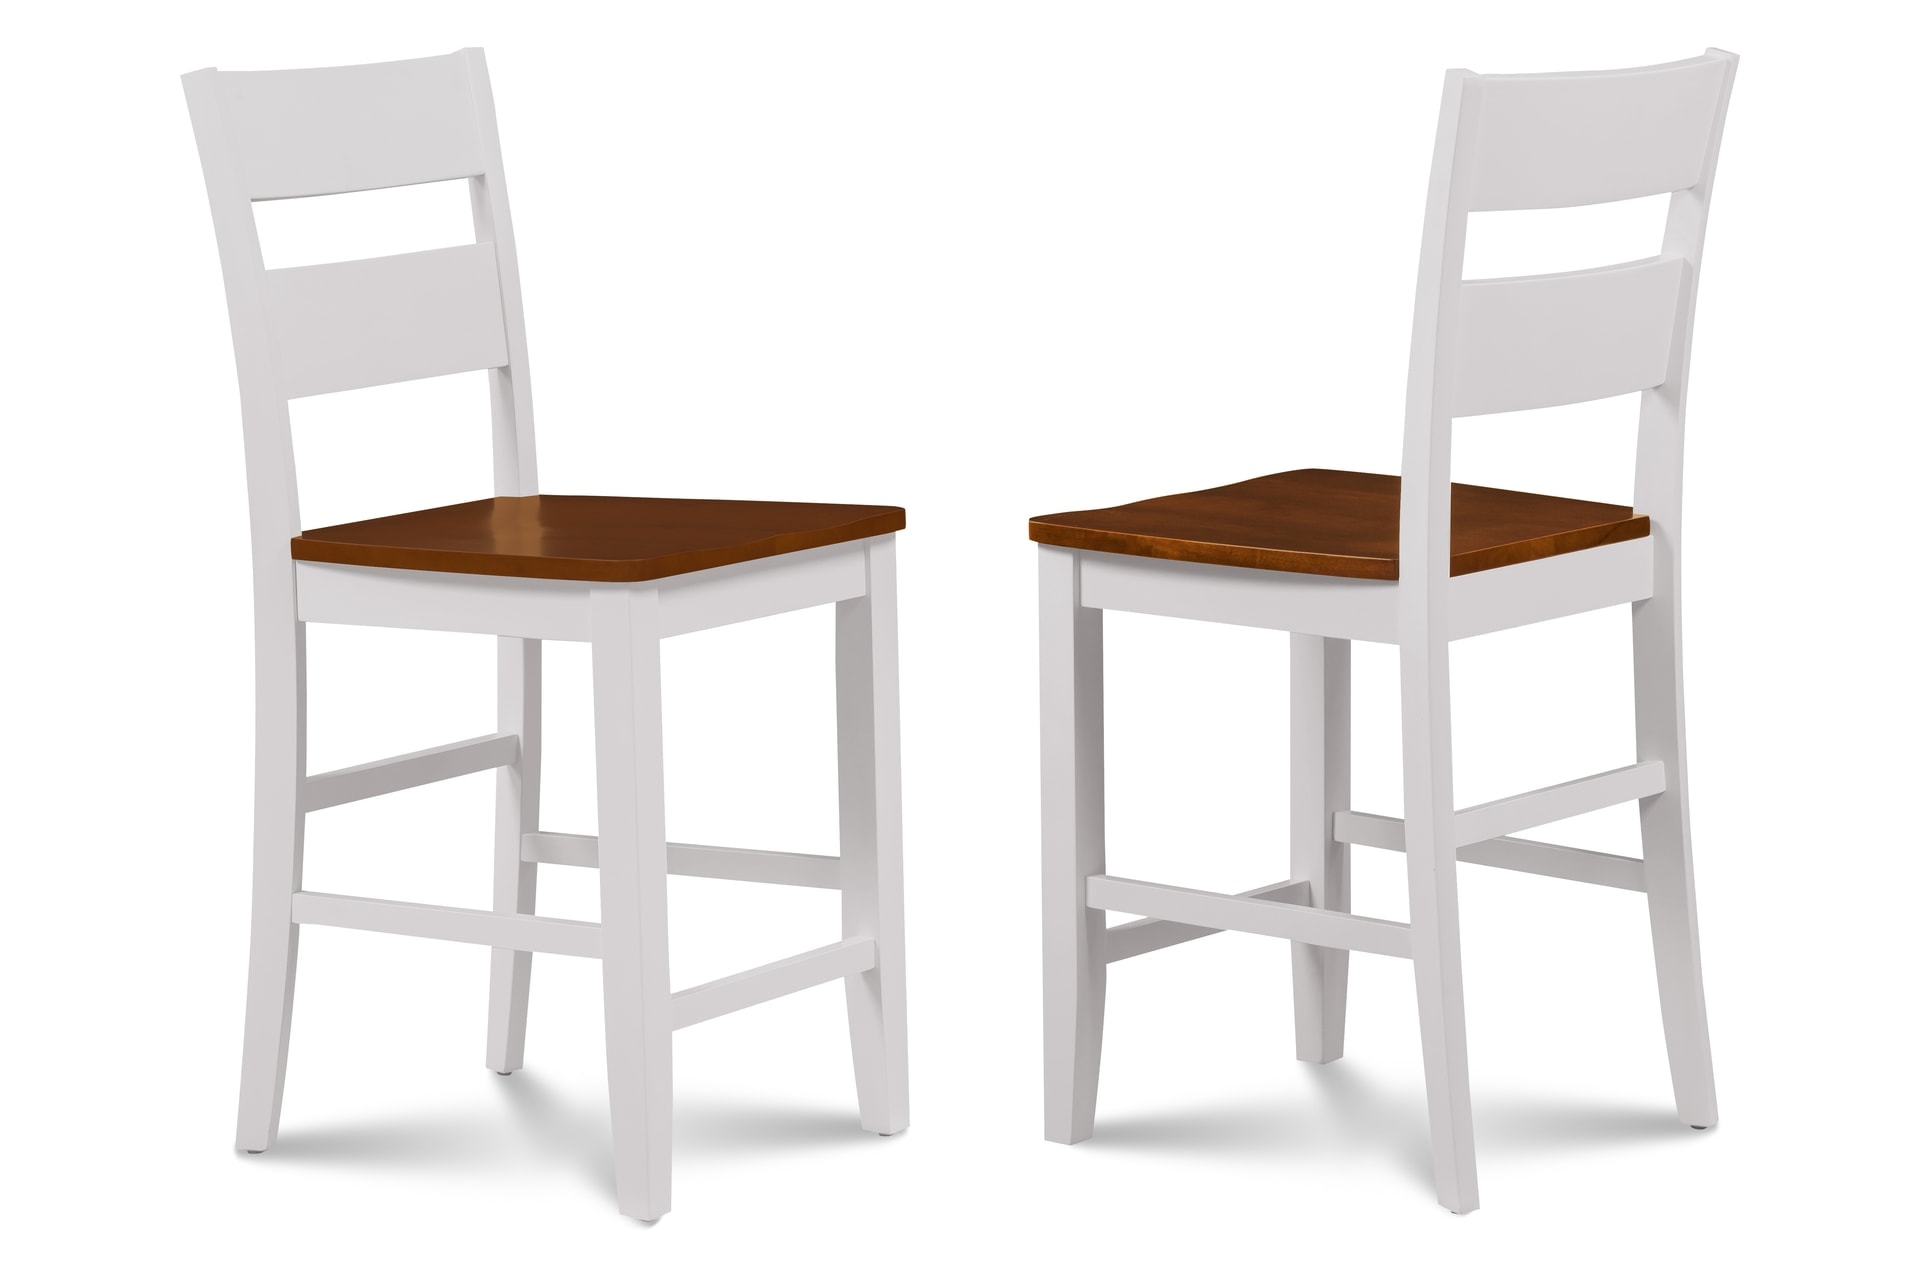 White Counter Height Chairs Chair Upholstered Table Dining Dining Set Sets Table